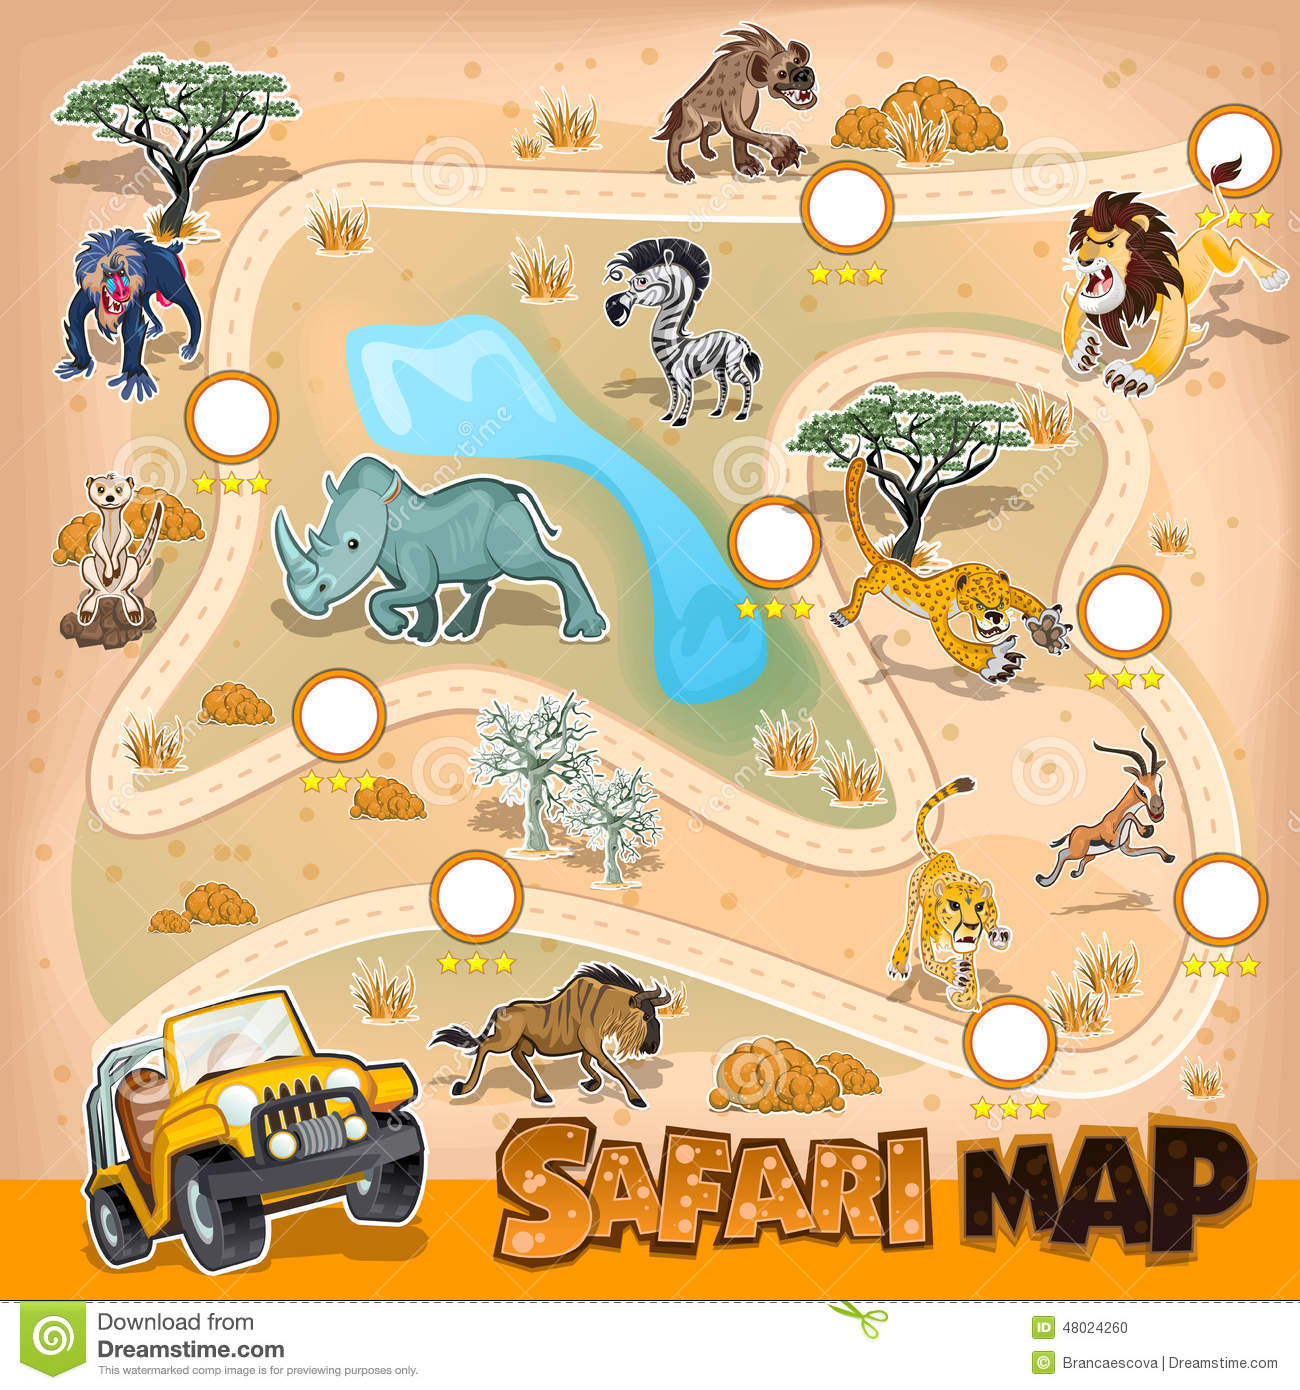 africa safari map wildlife stock vector illustration of Whale Clip Art laughing hyena clipart